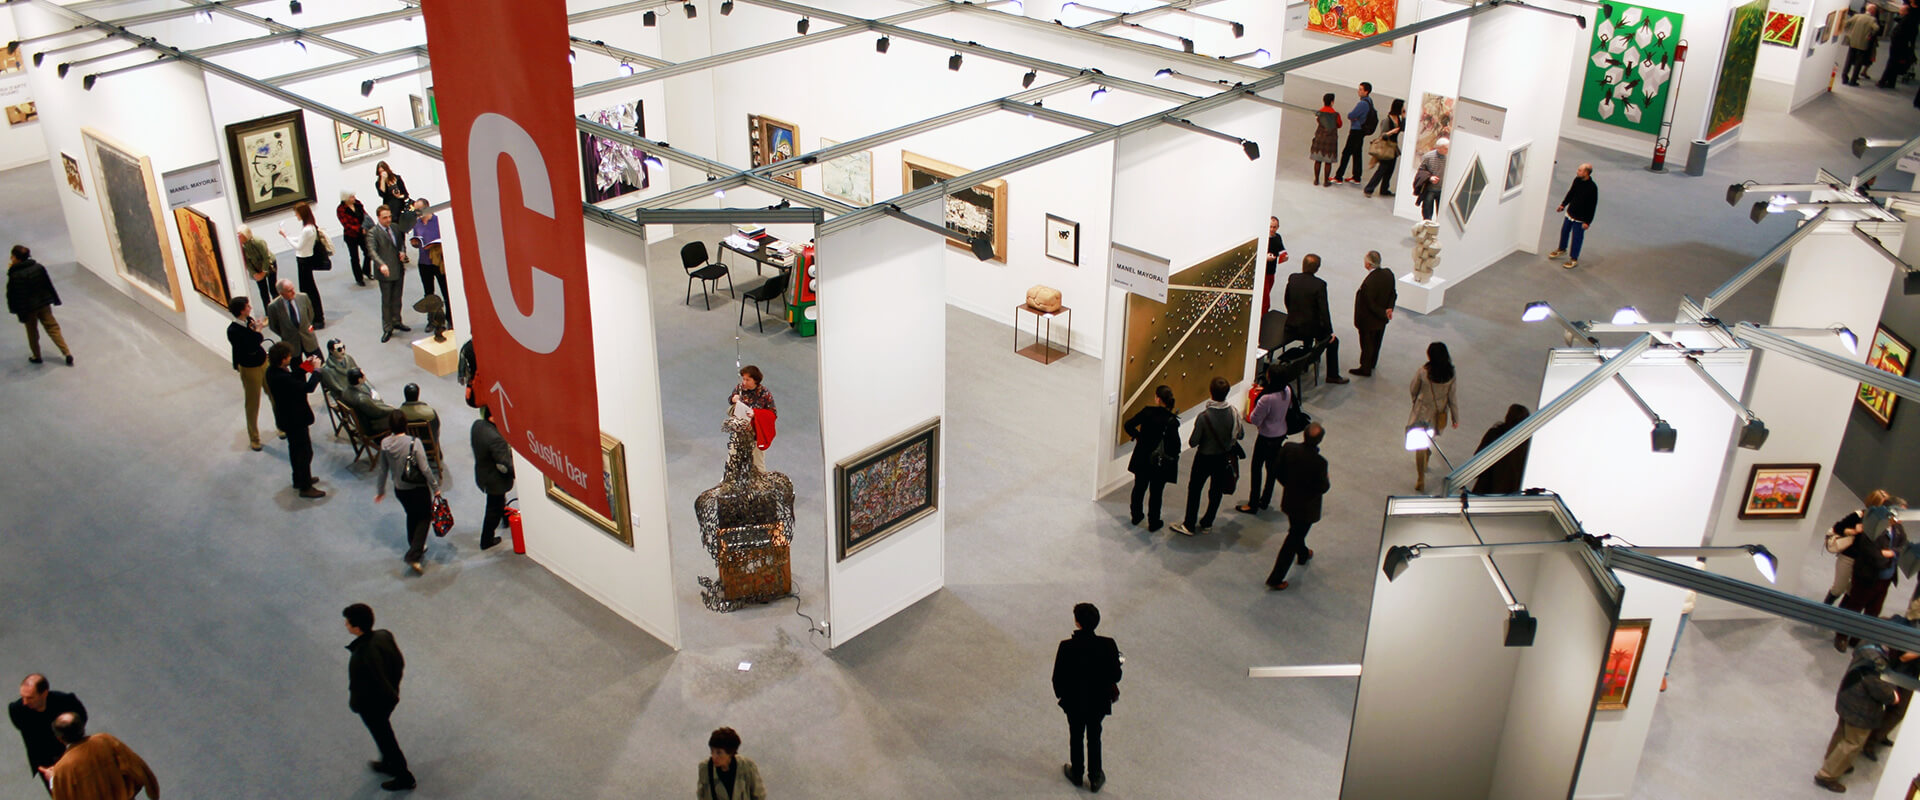 REVEL arthouse events and tradeshows